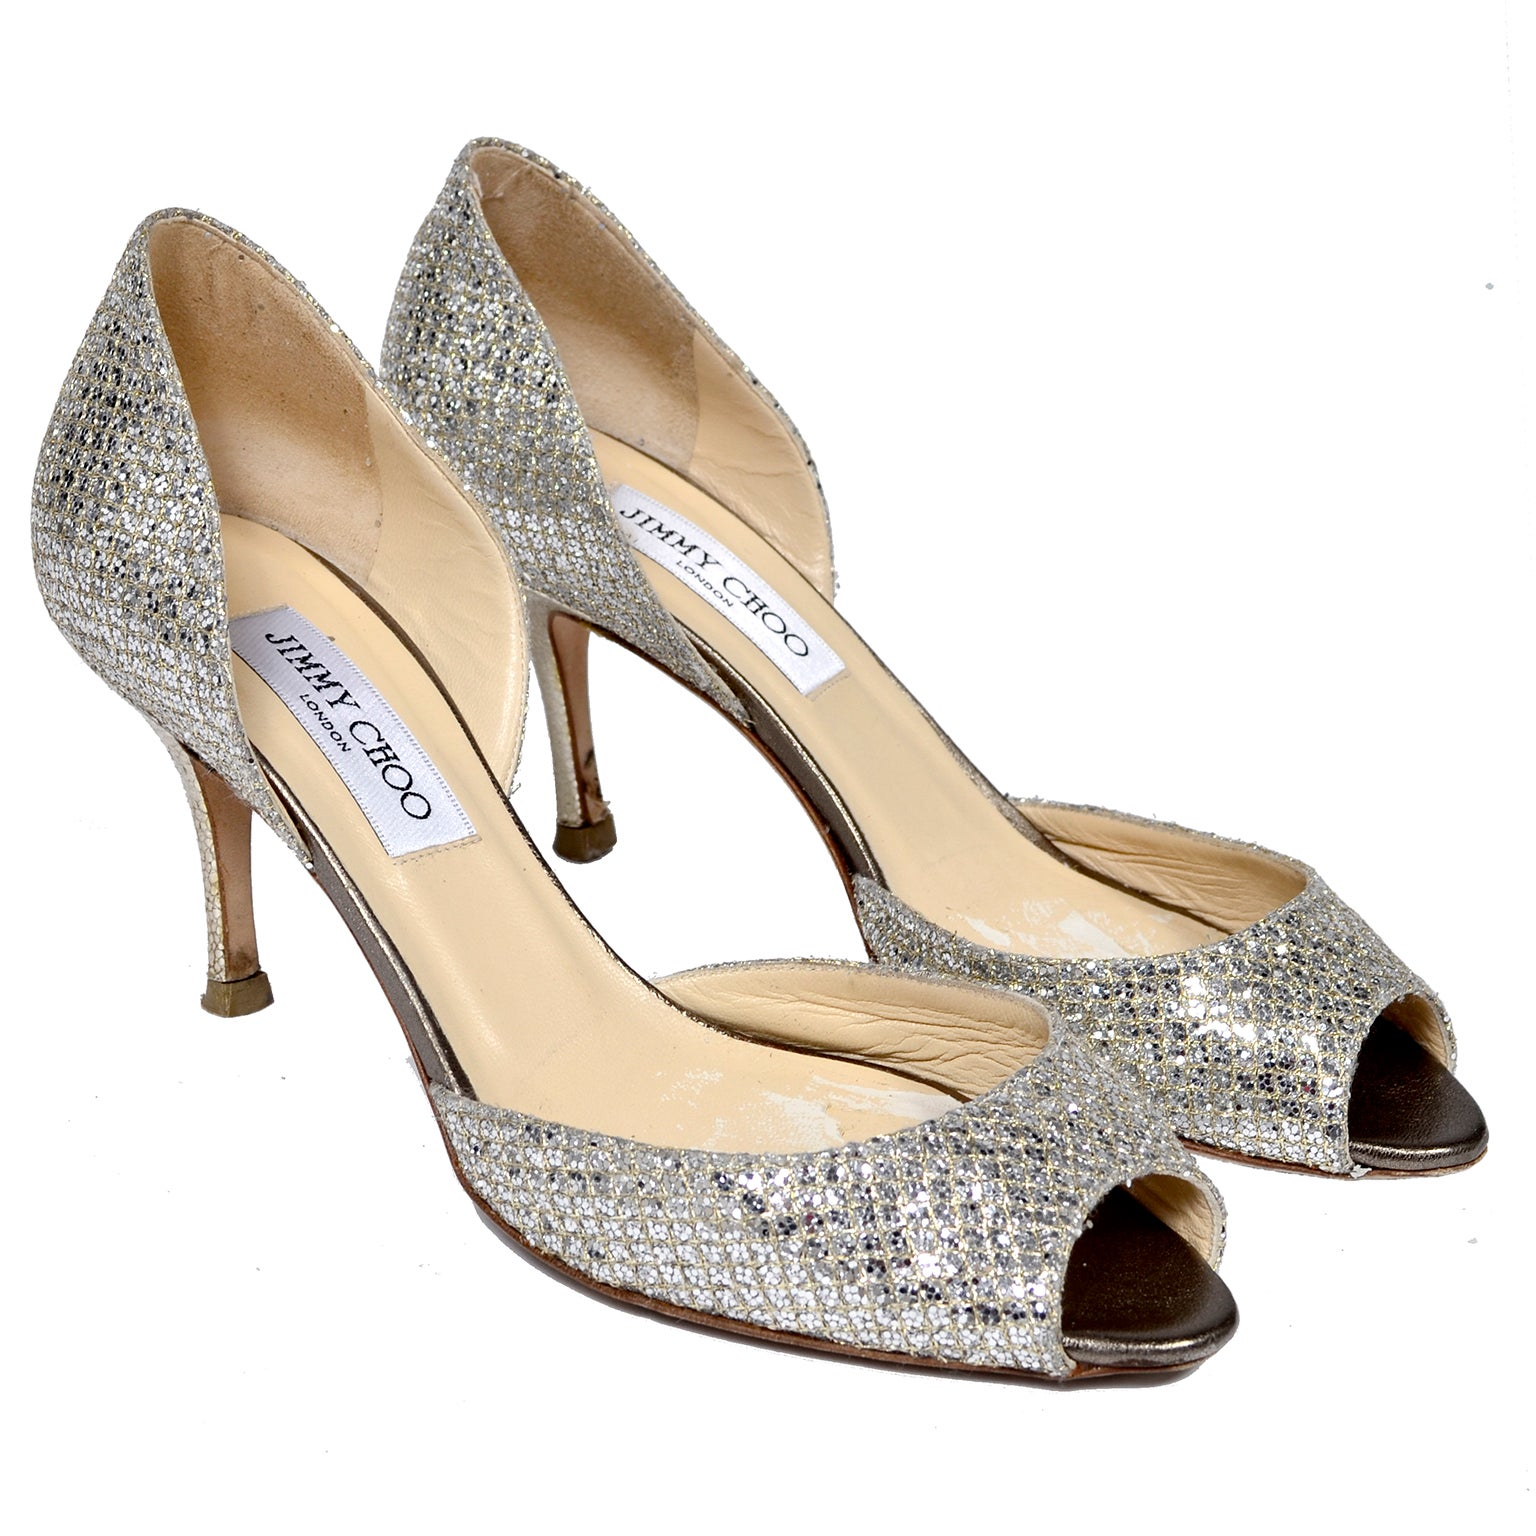 Jimmy Choo Shoes D'Orsay Pumps in